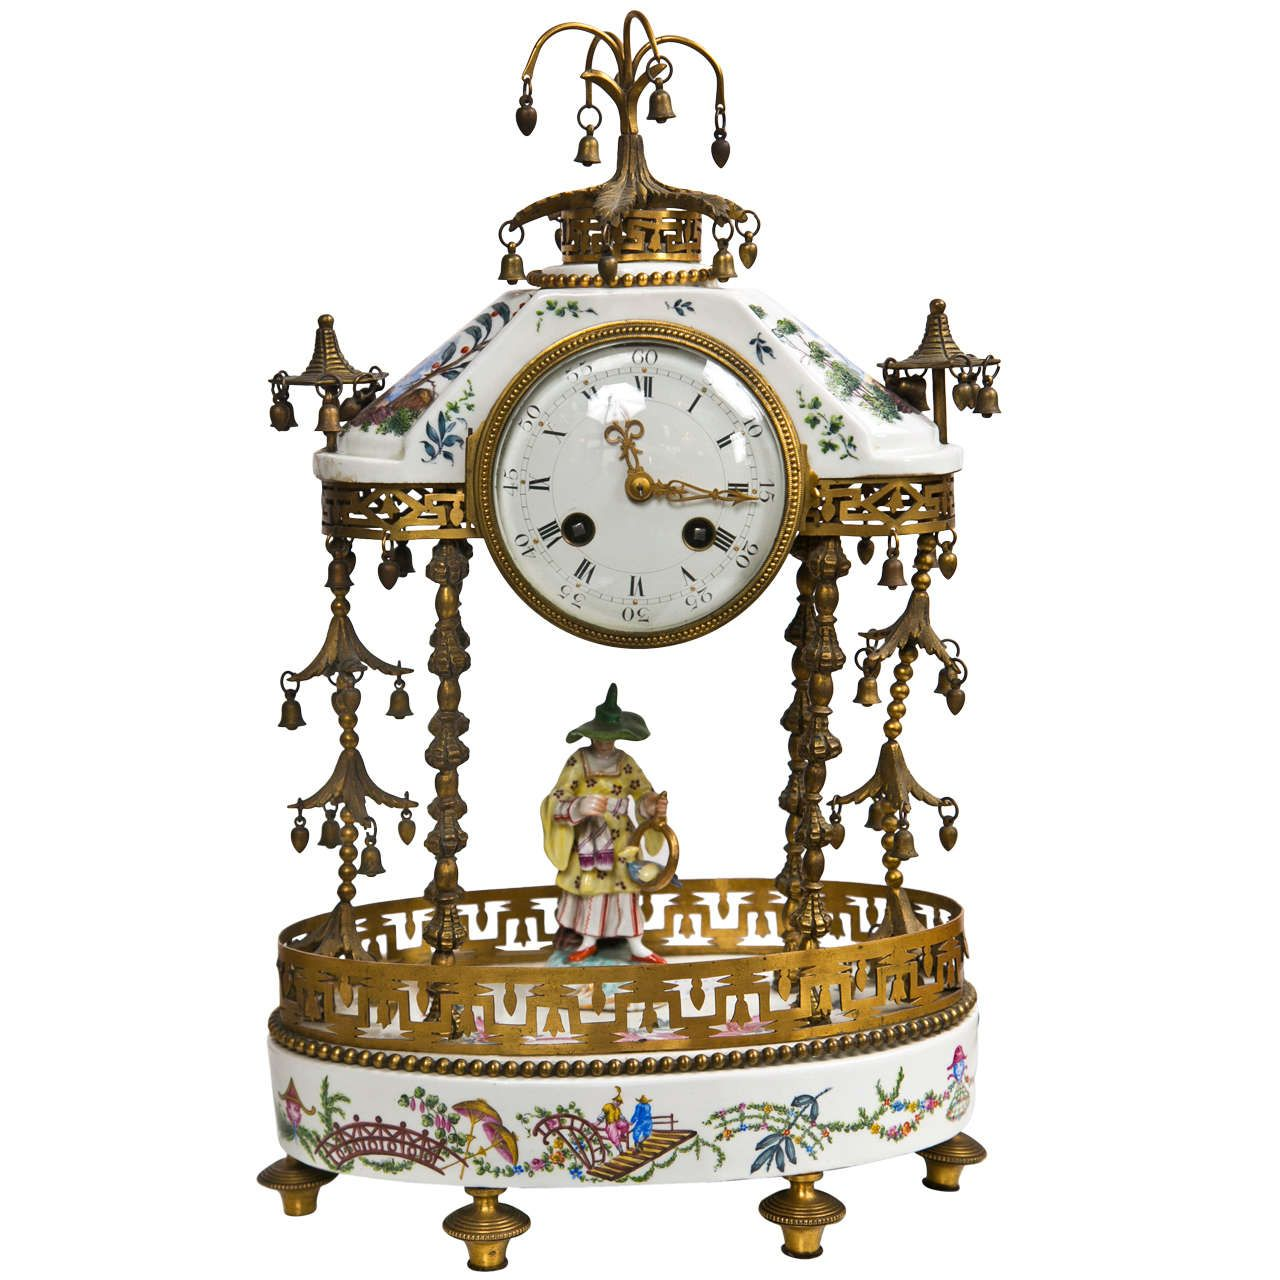 Antique 19th Century Porcelain Table Clock by J.E.Caldwell & Sons